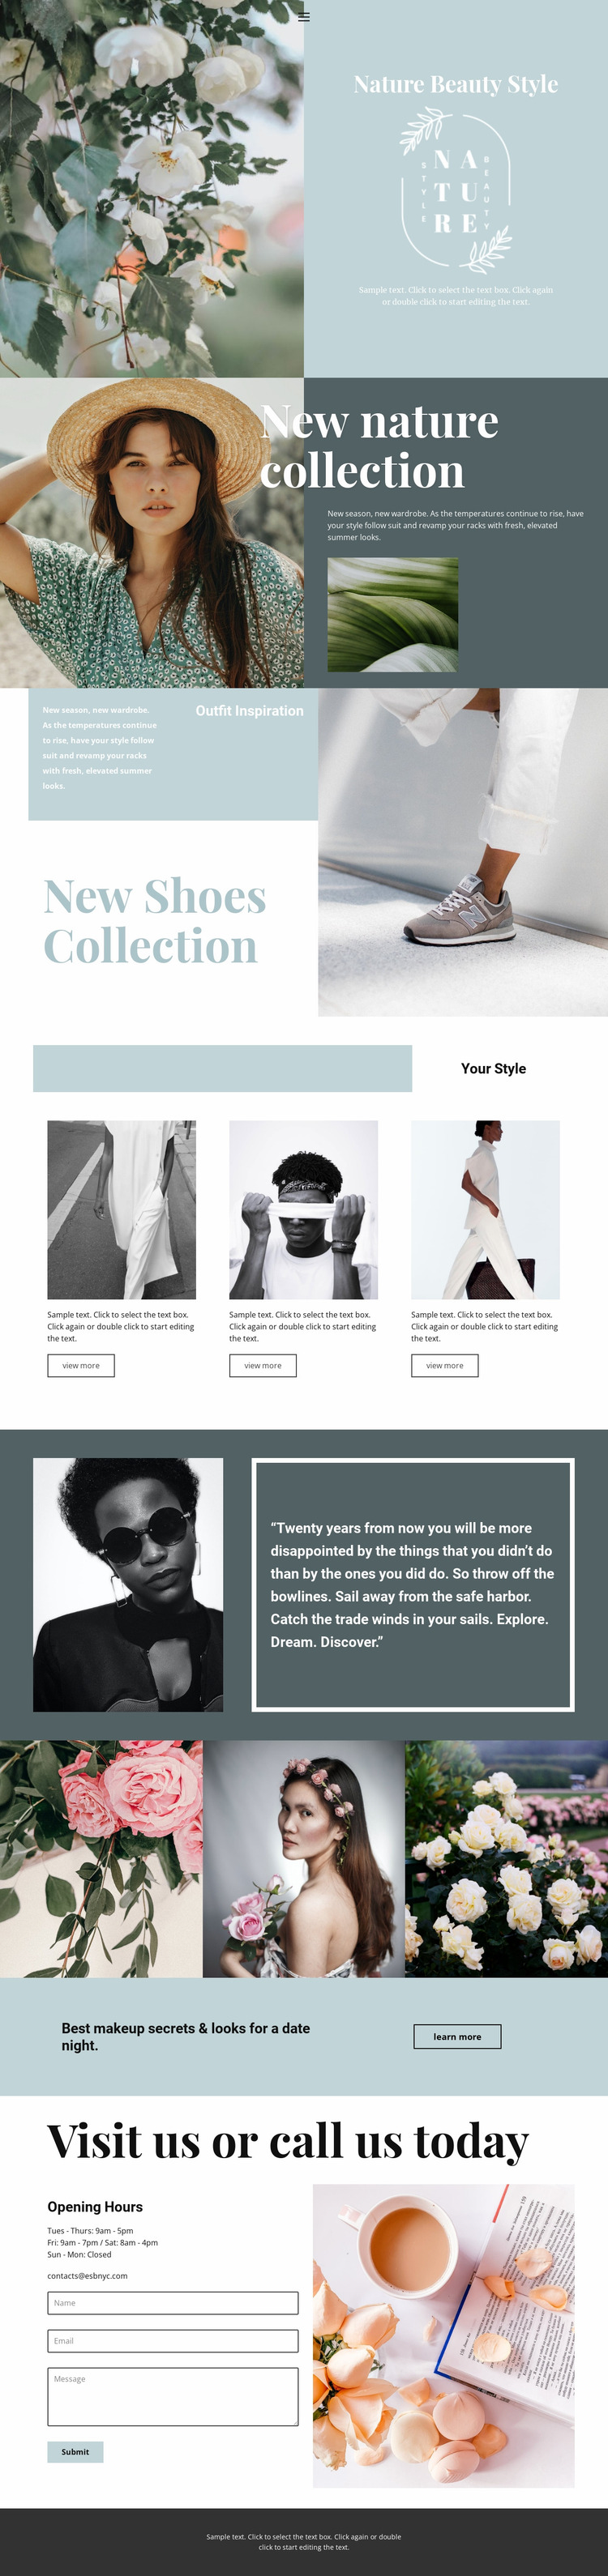 Nature collection Website Mockup